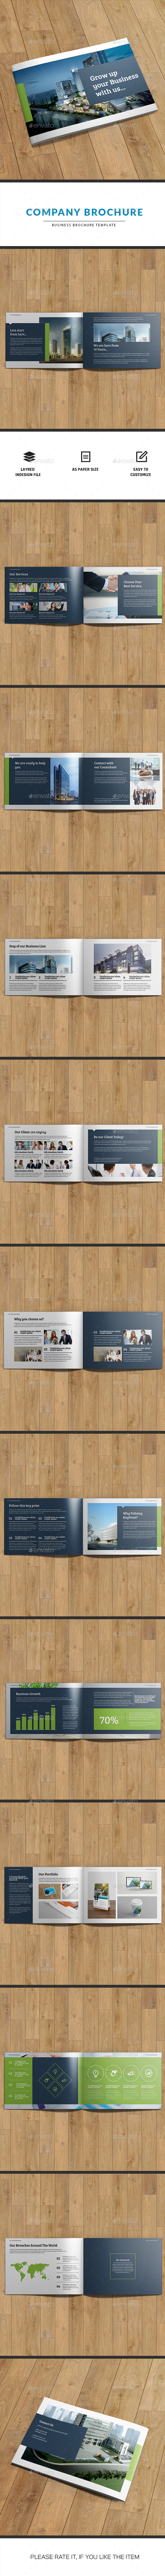 Company Brochure | Indesign Template - Corporate Brochures